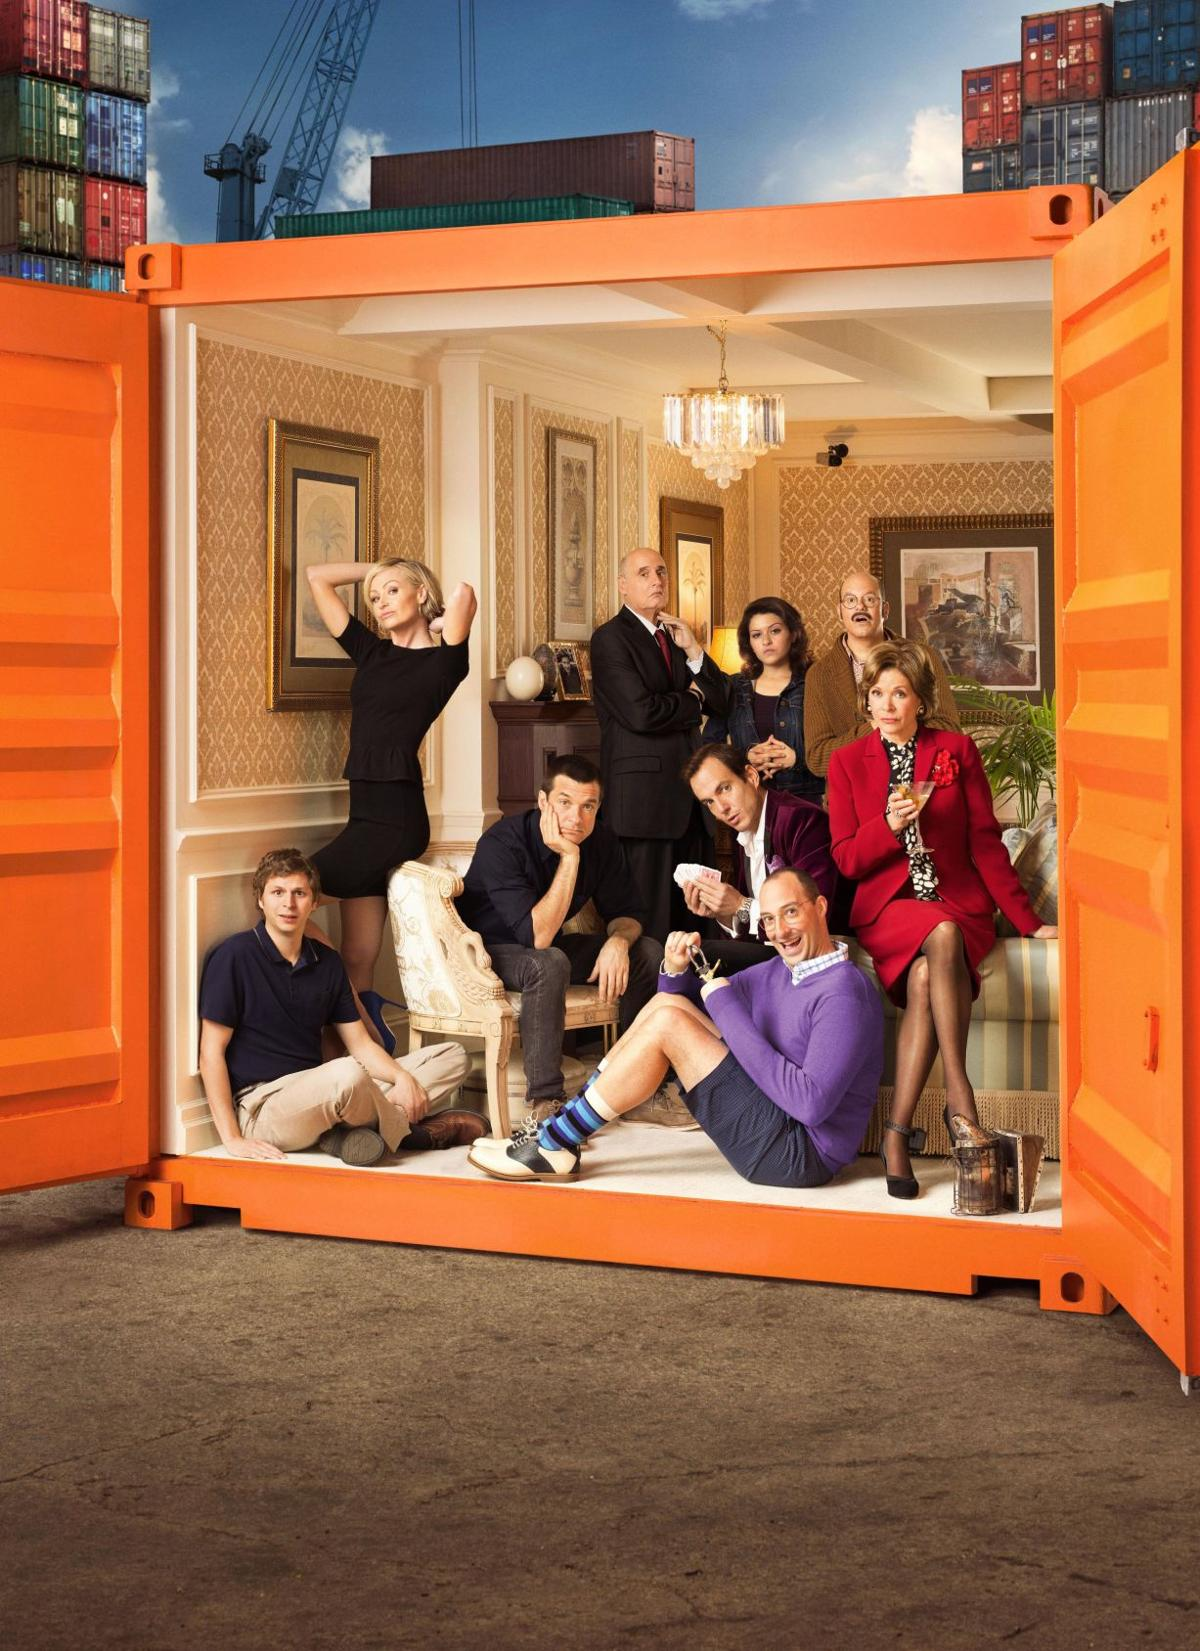 Mixed reviews of 'Arrested Development' a letdown for Netflix investors